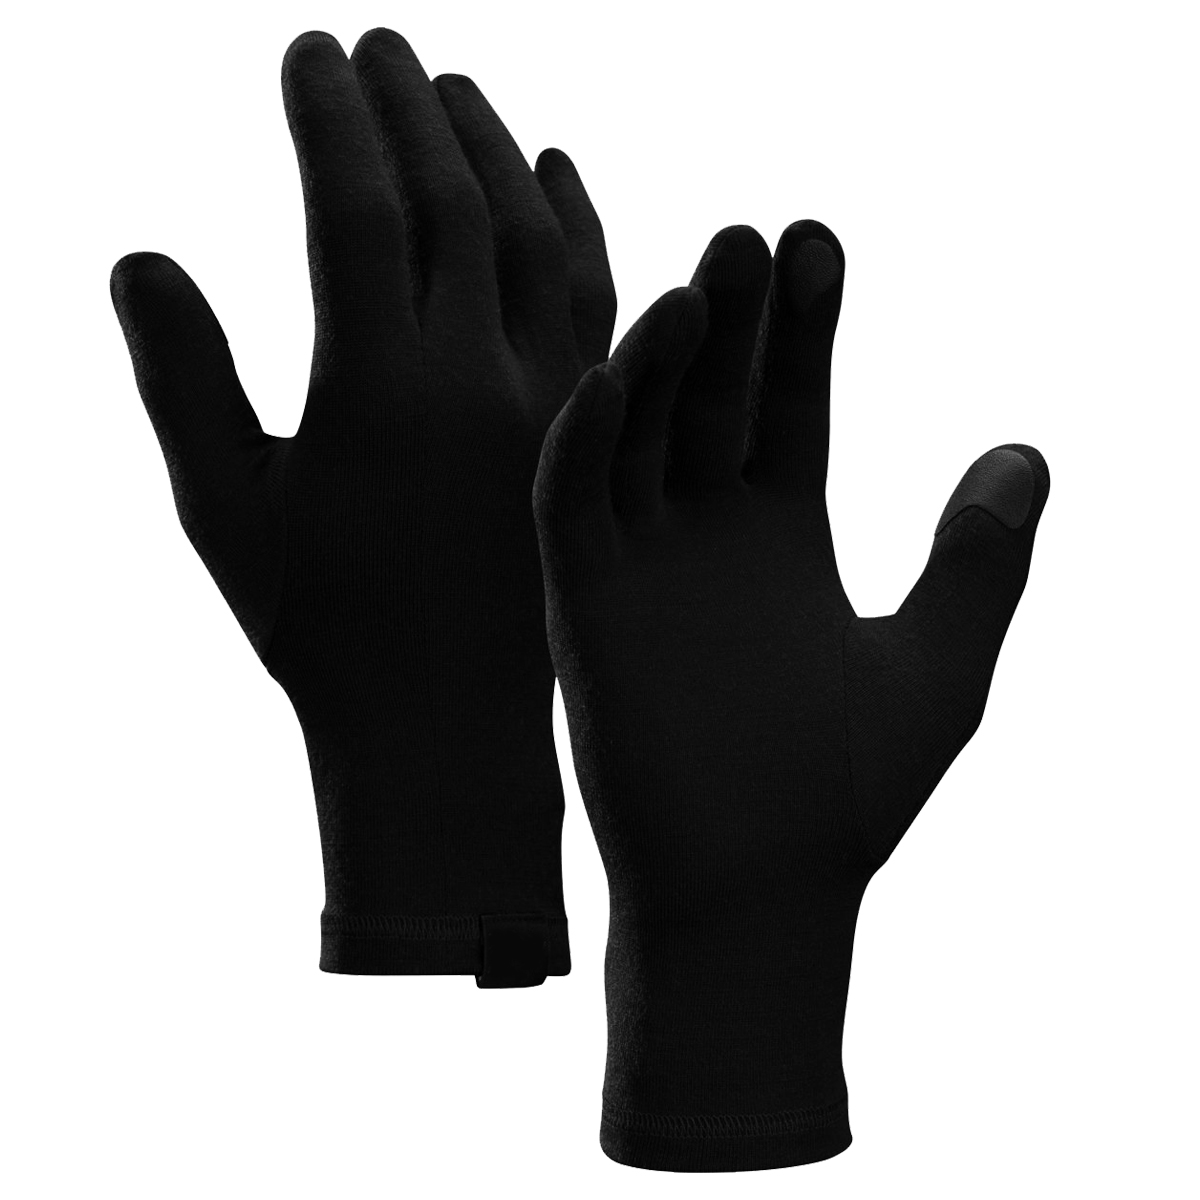 Wool Gloves with 2 Touch Screen Finger/MWG-003-A